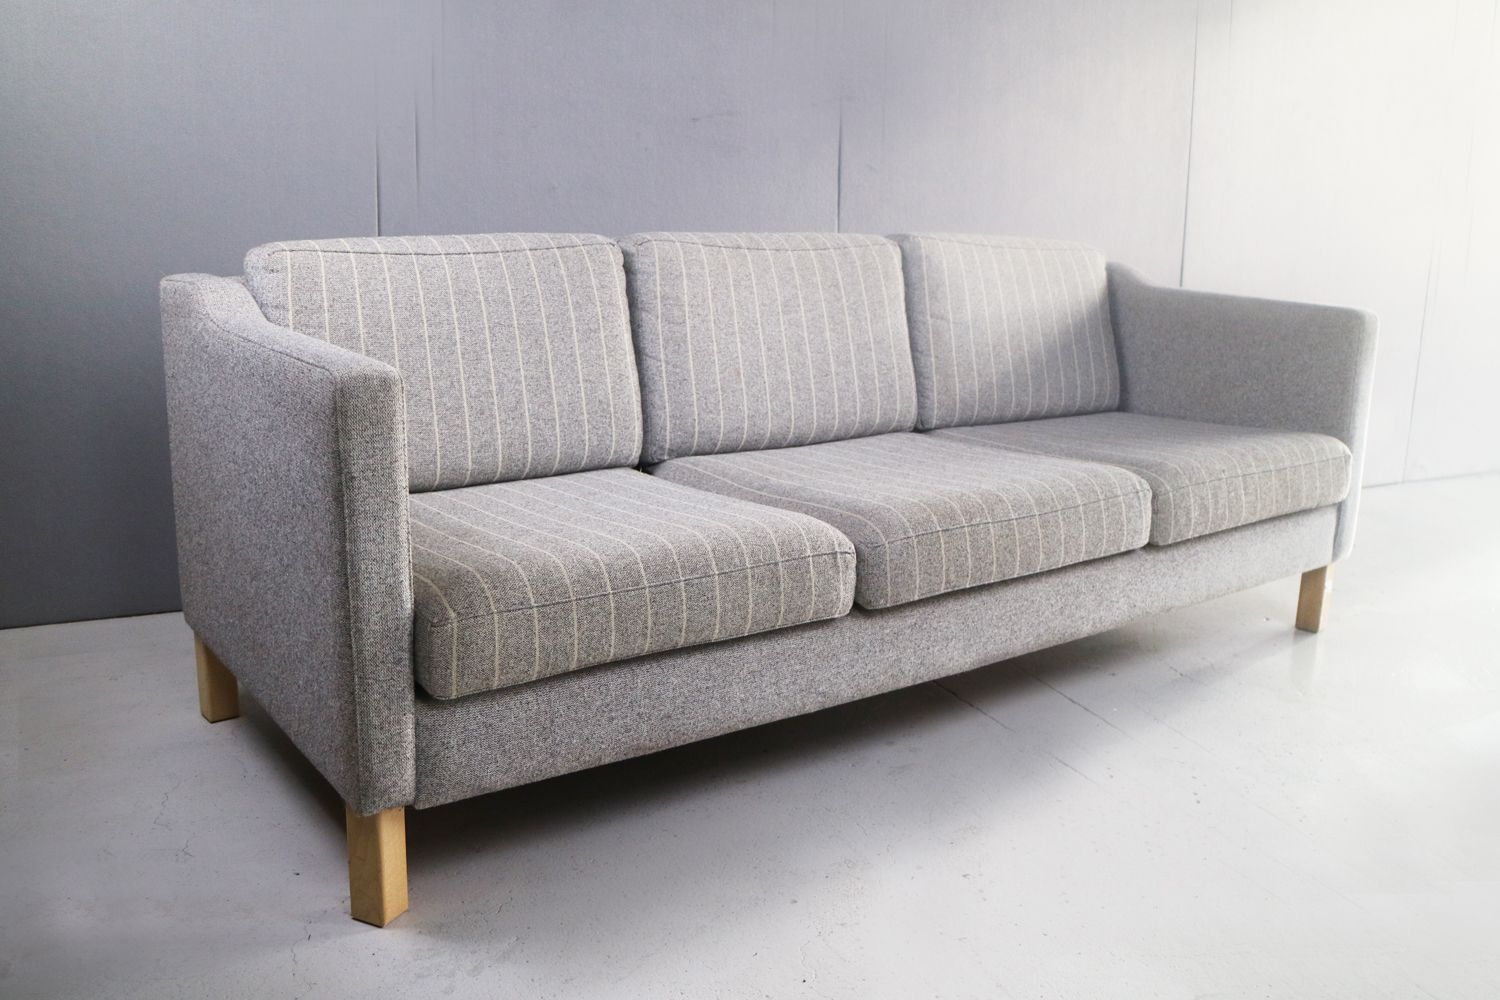 3 Seater Sofa 1970s For Sale At Pamono